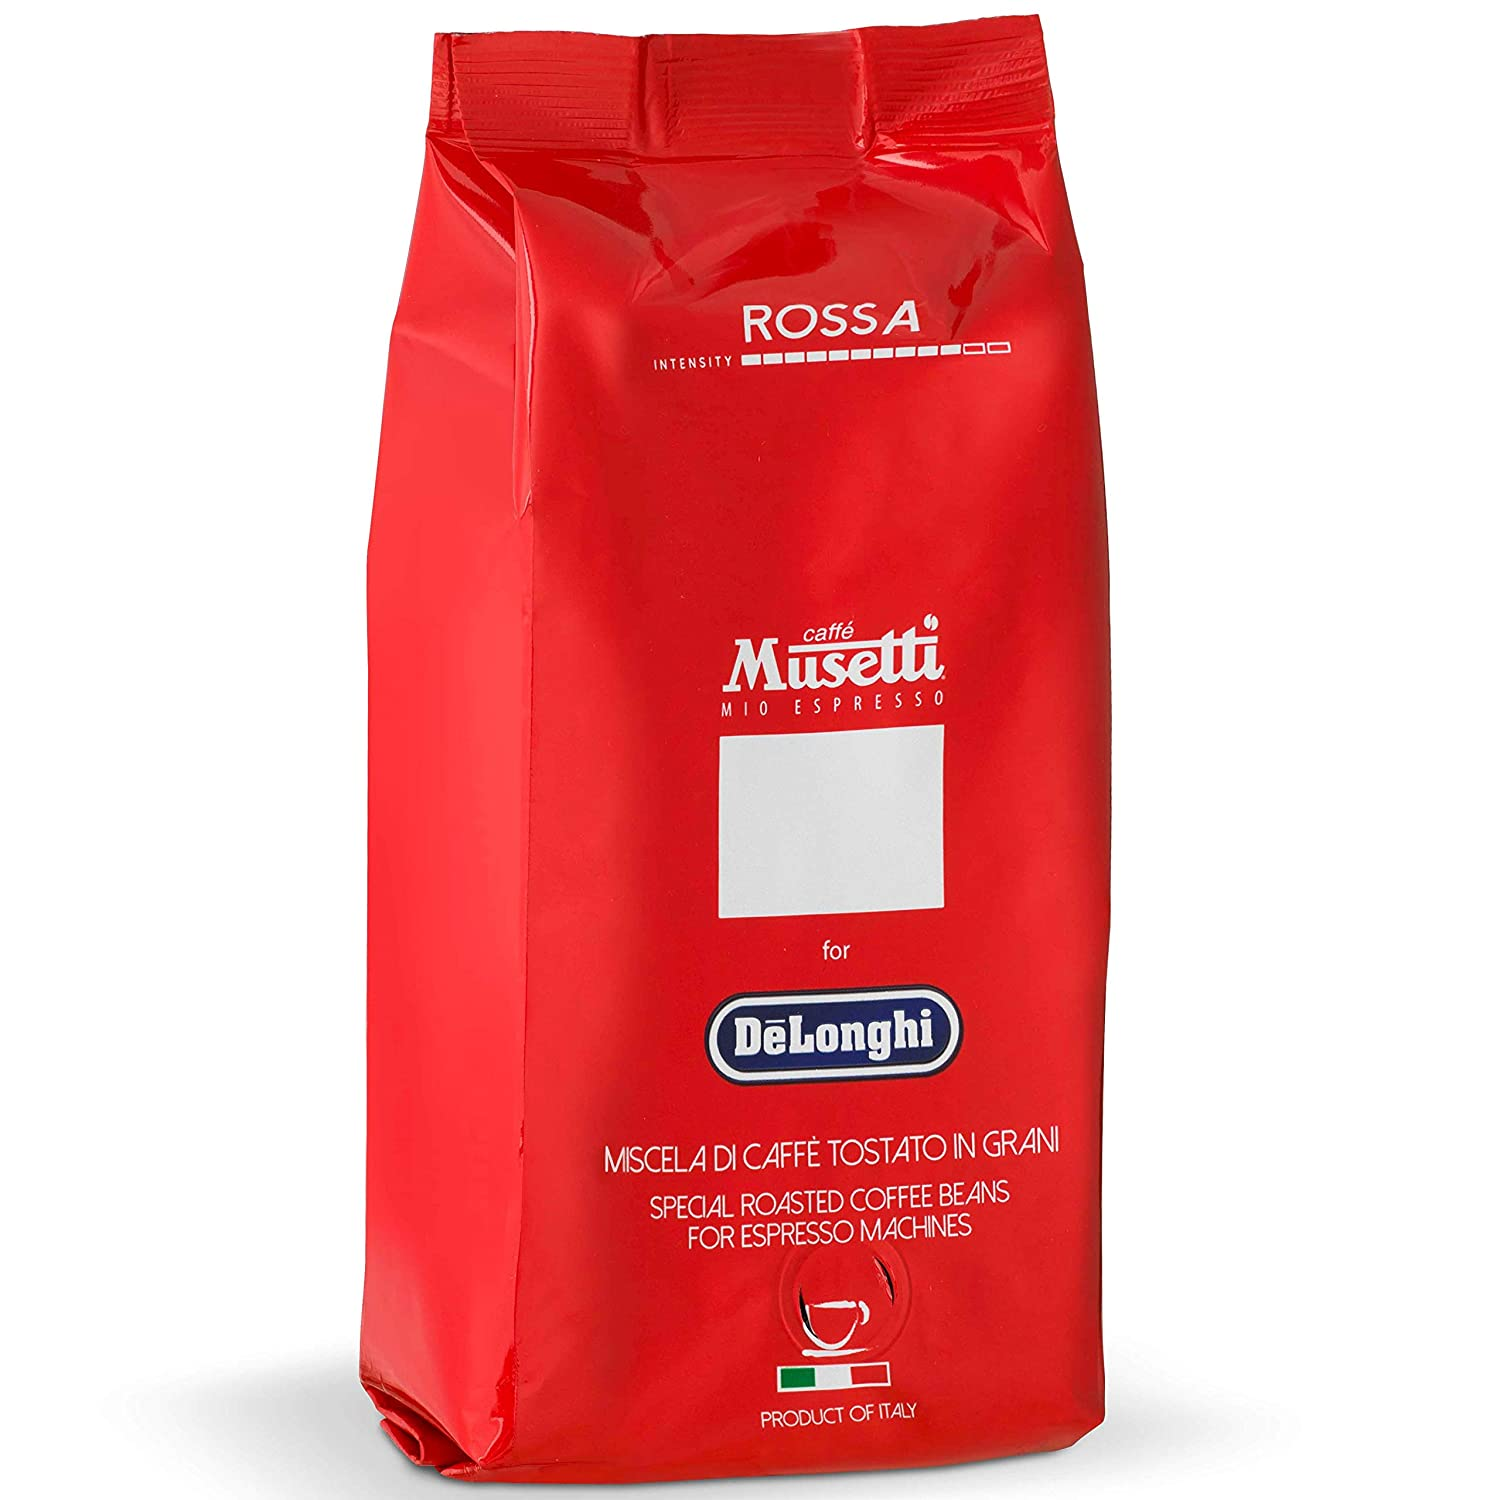 Musetti Free shipping anywhere in the nation over Rossa coffee Max 89% OFF beans 250g bag